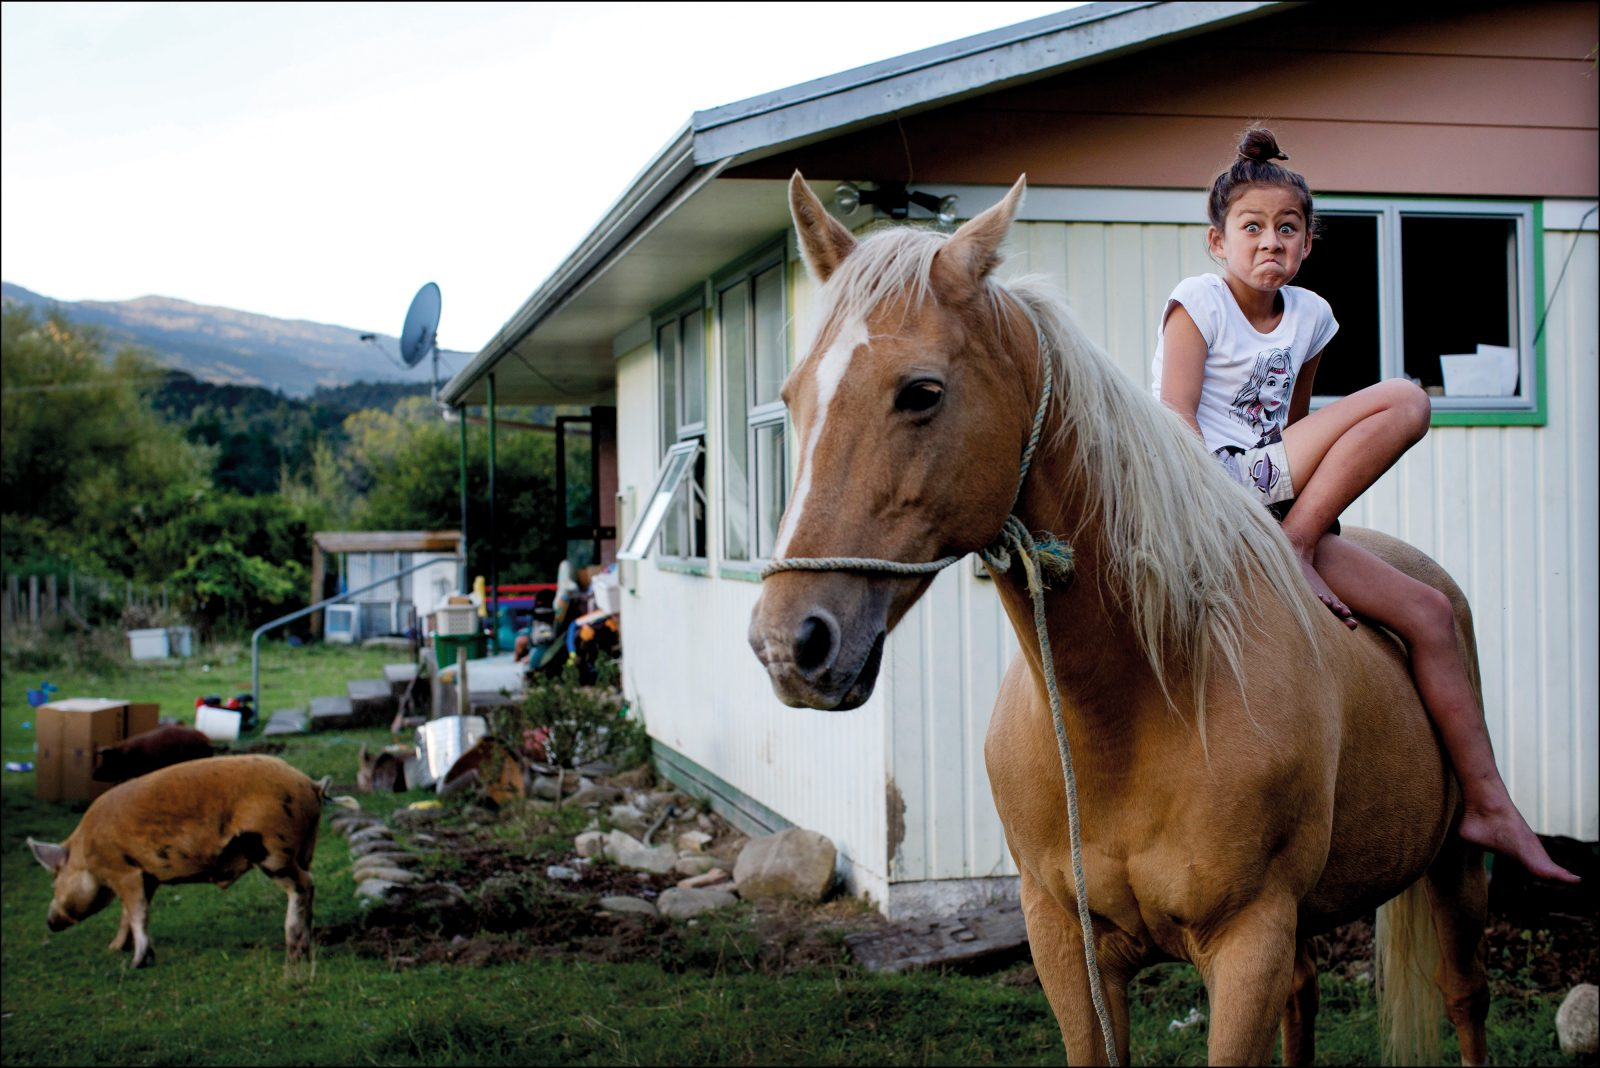 "Photographer David White travelled to the Urewera for a Sunday Star Times photo essay on the historic Treaty settlement with Tūhoe. ""The backbone of the story was going to hinge on an interview with tribal elder Tame Iti, but from a photographic point of view, I wanted to concentrate more on the Tūhoe youth,"" he says. In the village of Tuai, he came across nine-year-old Te Ataahia Lambert and her family; after a cup of tea, he asked if he could photograph the children while they tended their horses in the fading light. When he raised his camera to photograph Te Ataahia, she widened her eyes and clenched her mouth in a pūkana, a facial expression used for emphasis."